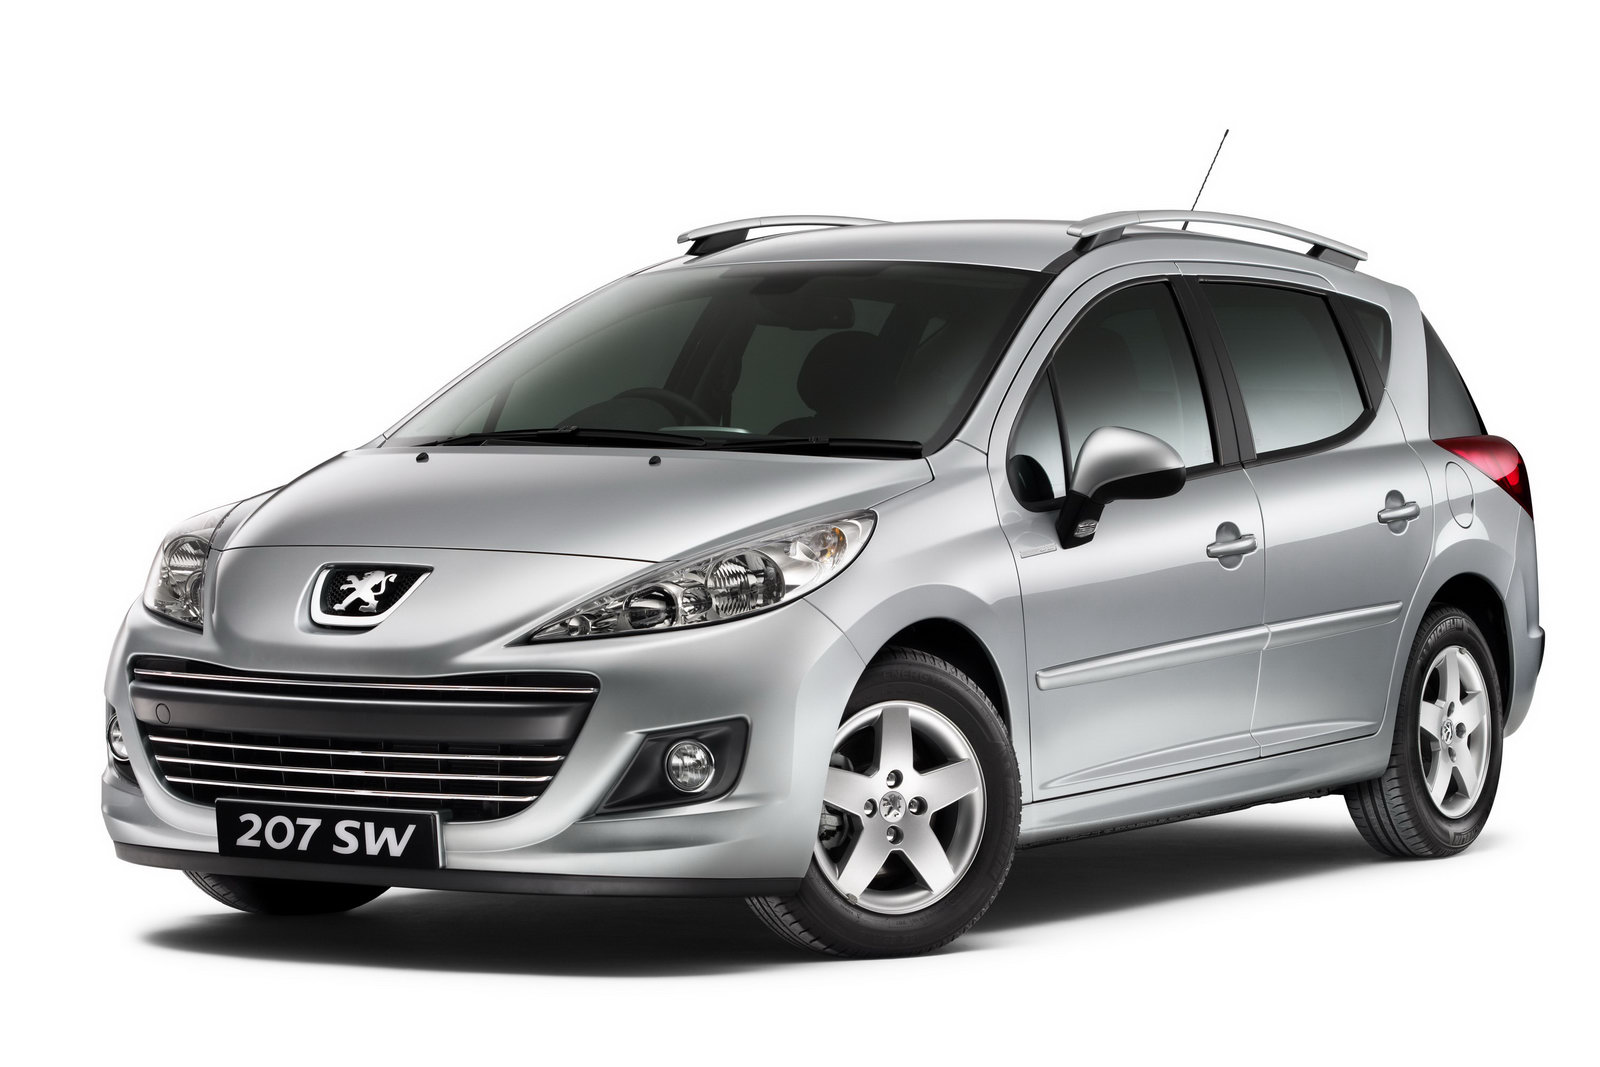 peugeot uk announces 207 millesim 200 special edition. Black Bedroom Furniture Sets. Home Design Ideas